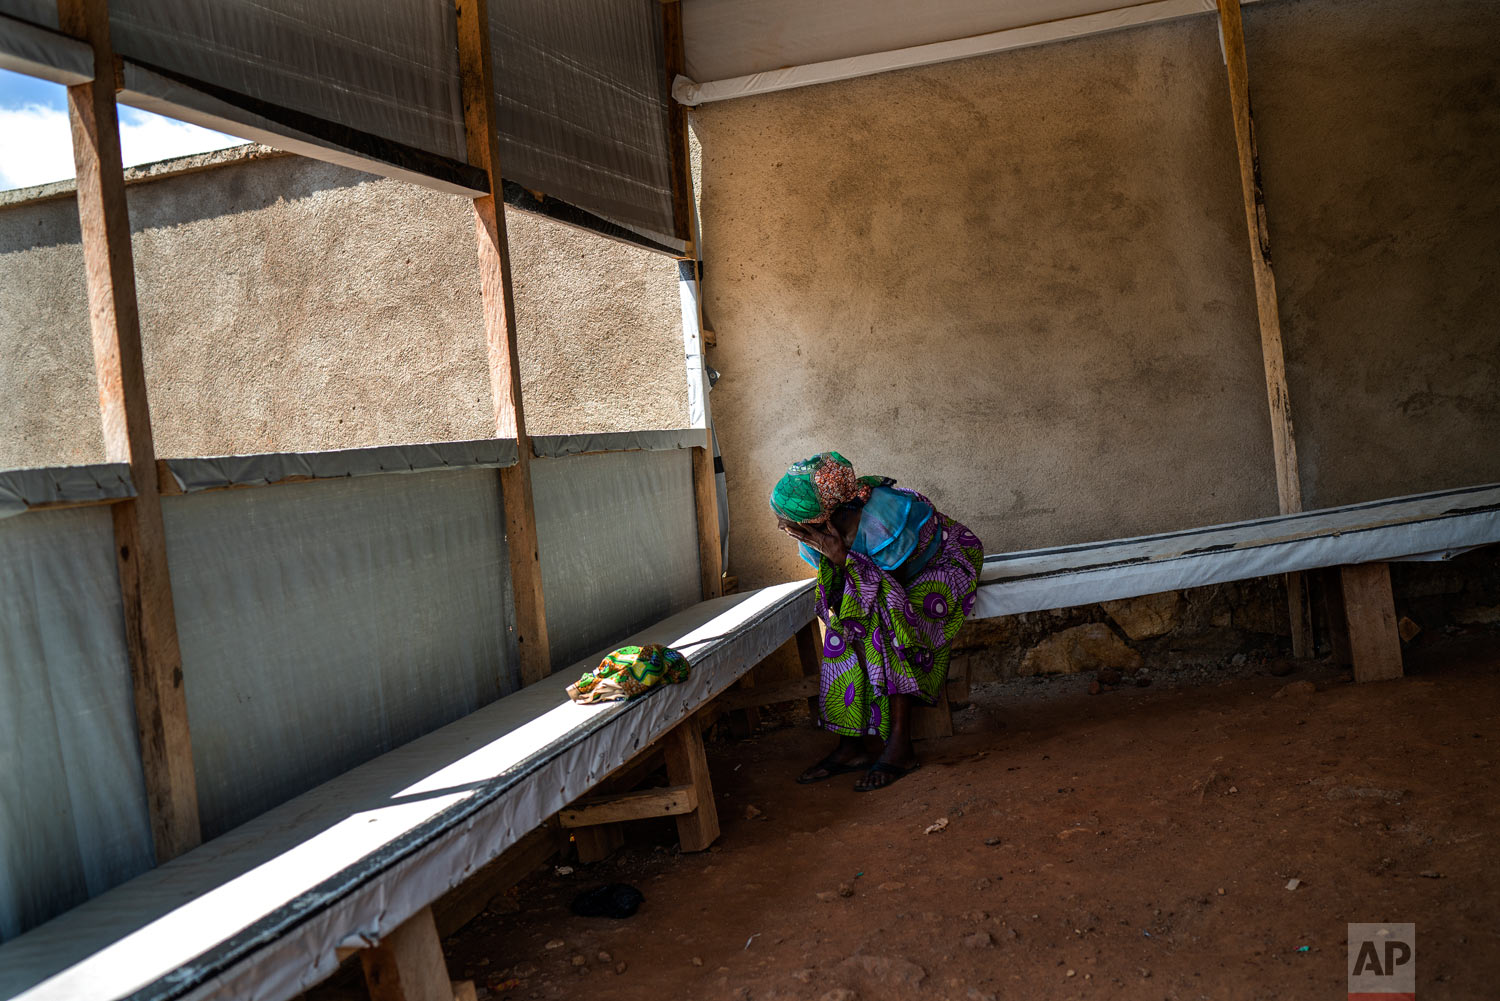 A woman waits at the morgue for the body of her relative to be cleared for burial in Beni, Congo, July 14, 2019. (AP Photo/Jerome Delay)